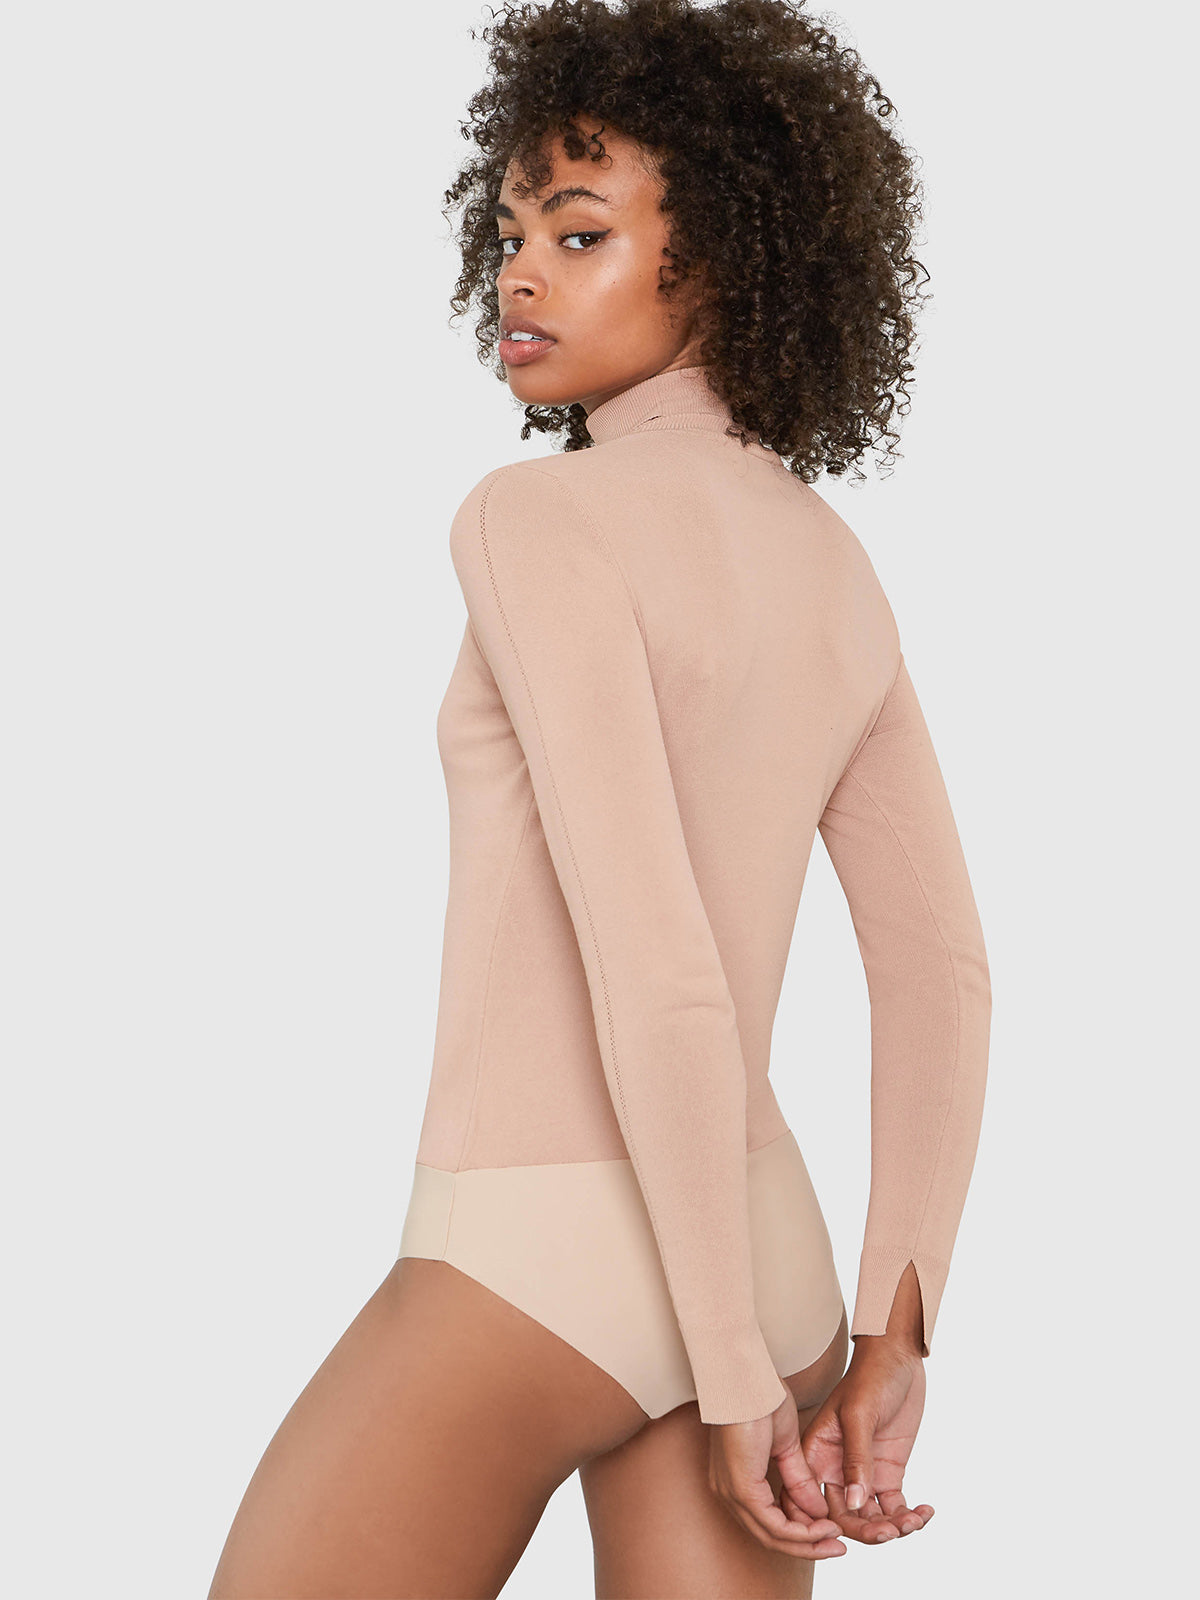 Mira Turtleneck Bodysuit | Nude Mira Turtleneck Bodysuit | Nude